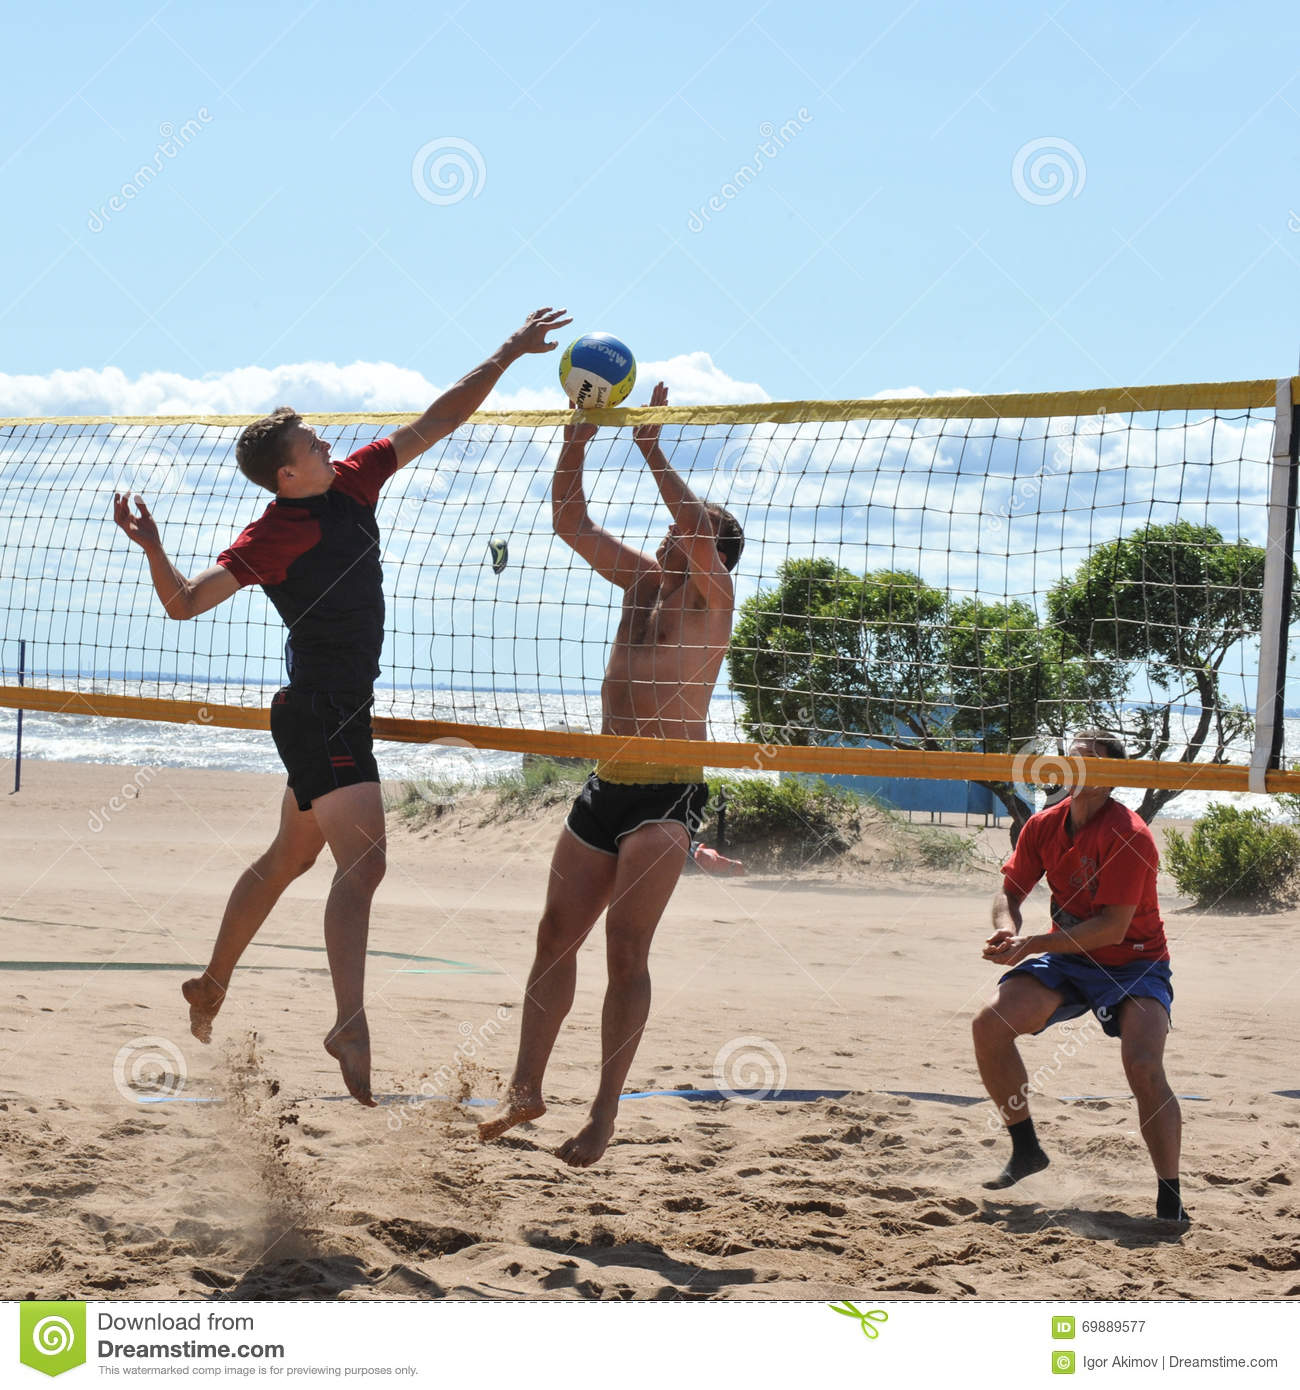 City competitions on beach volleyball